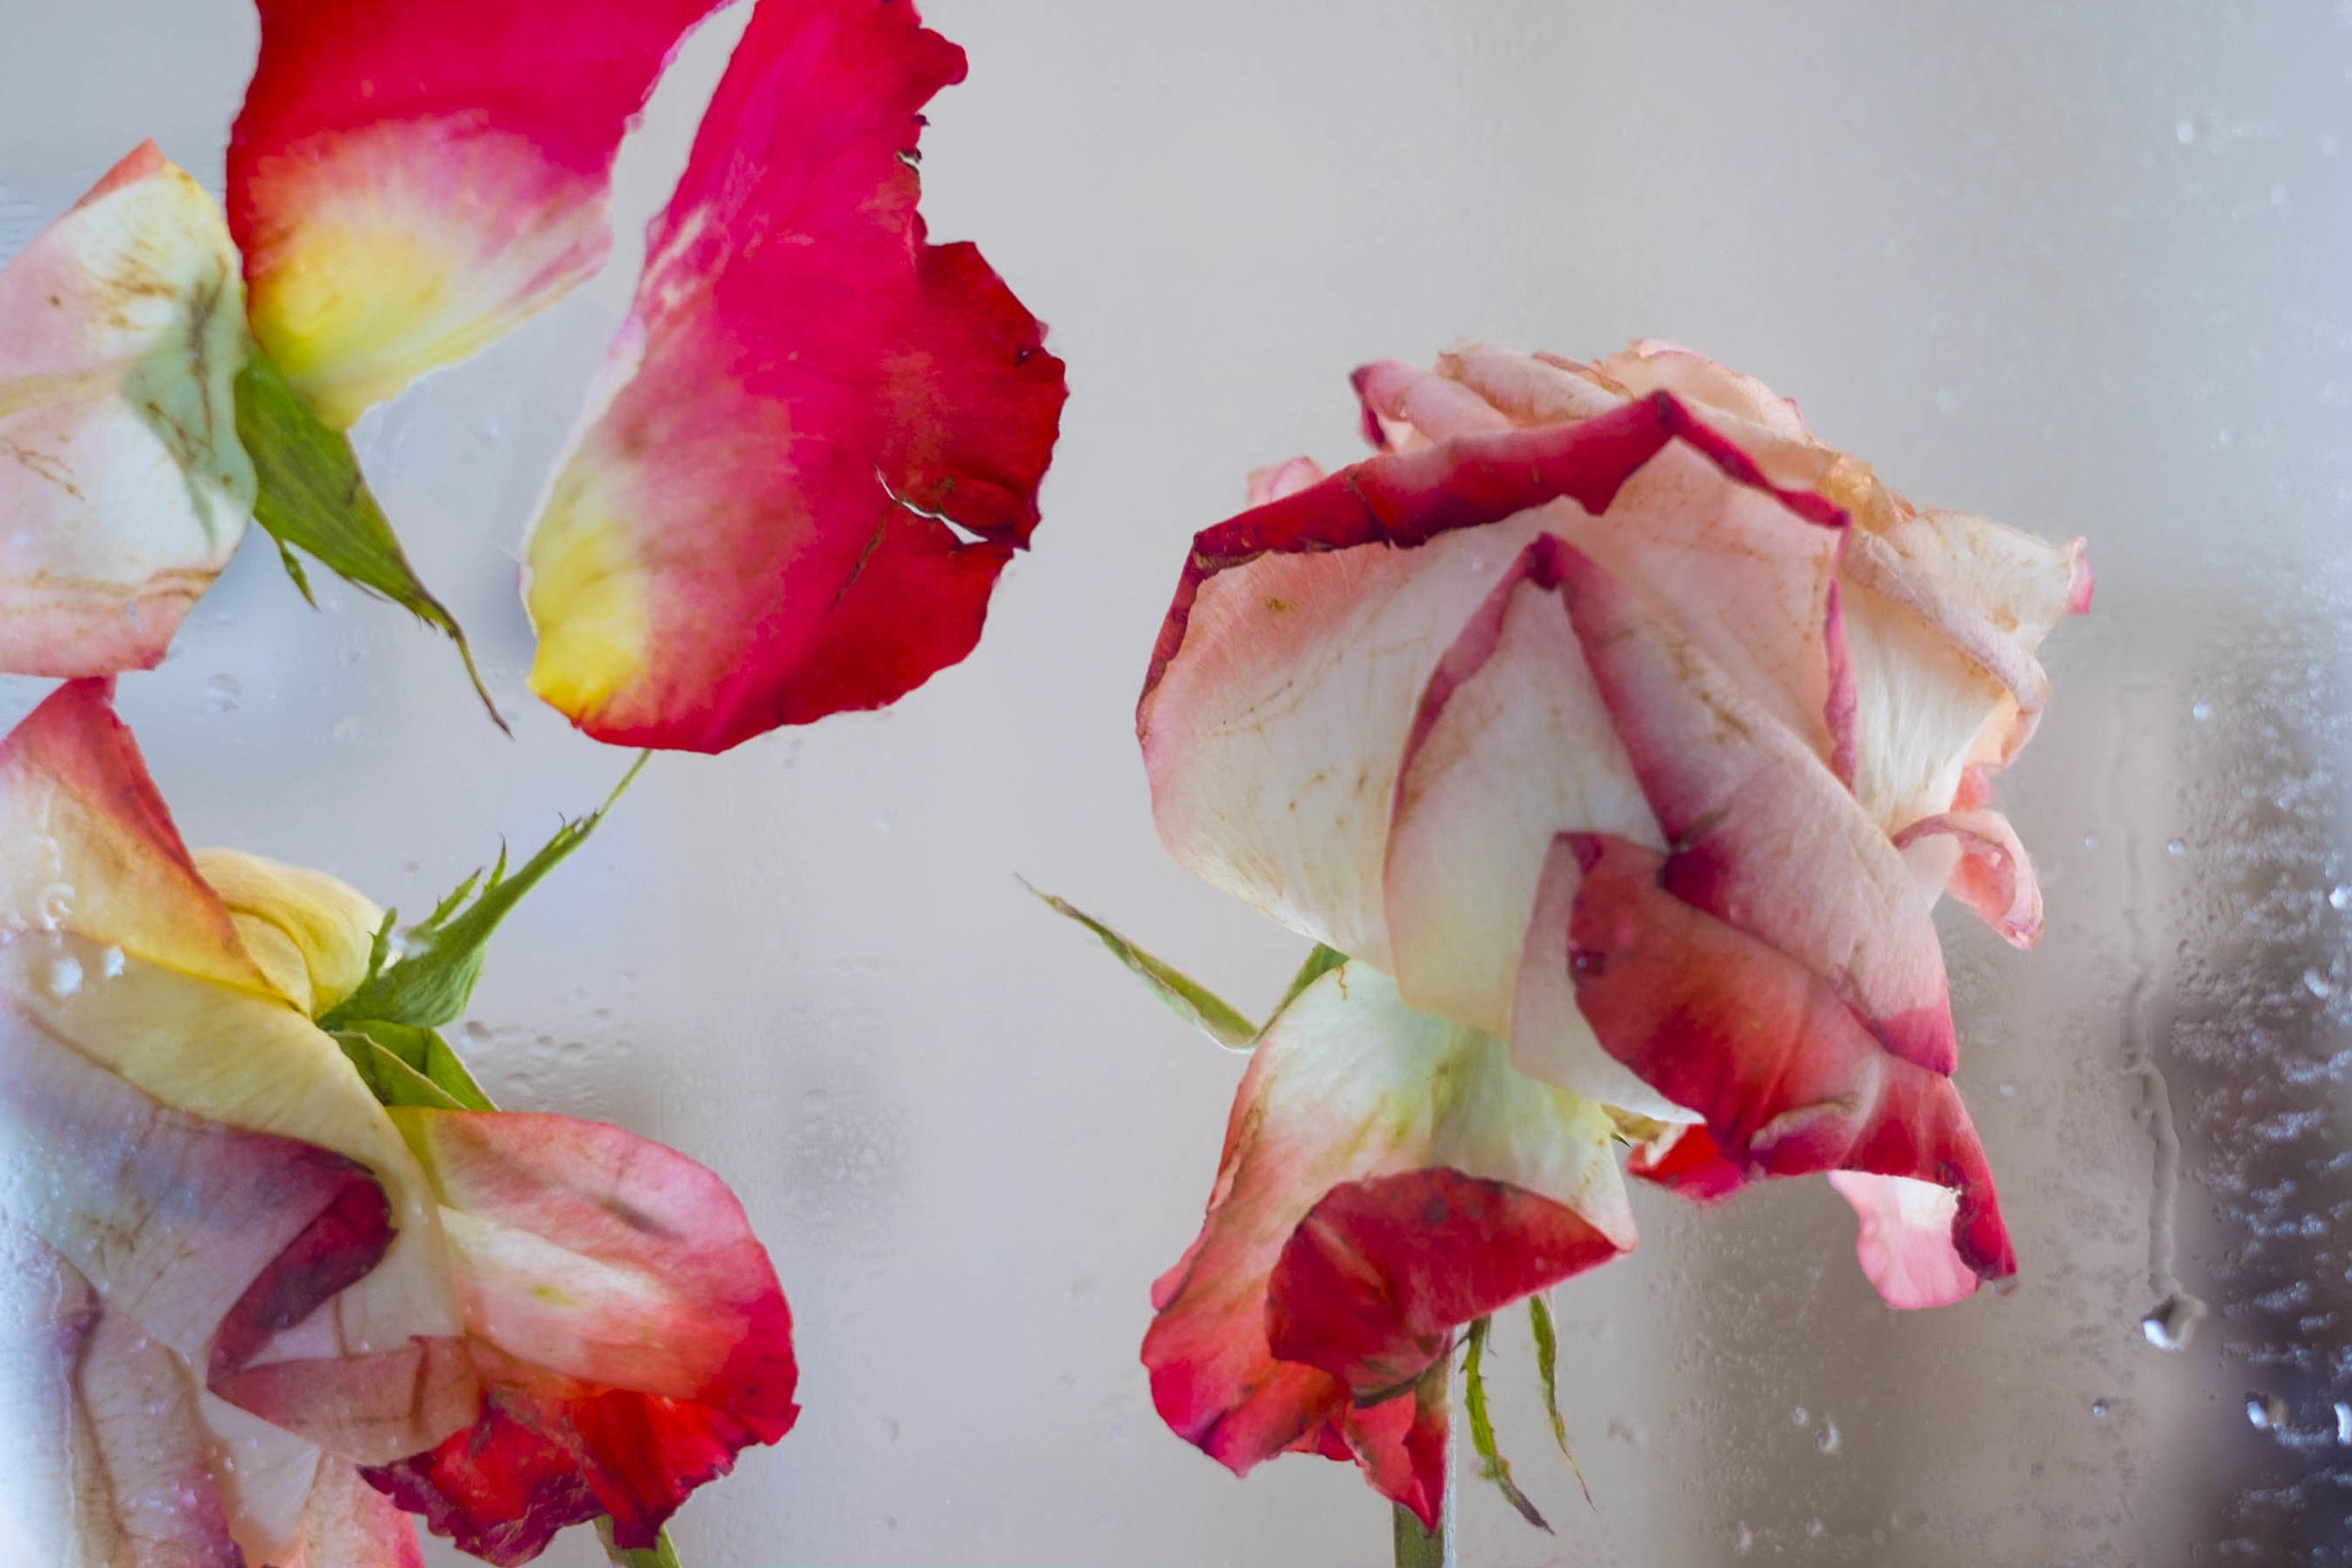 rose remains